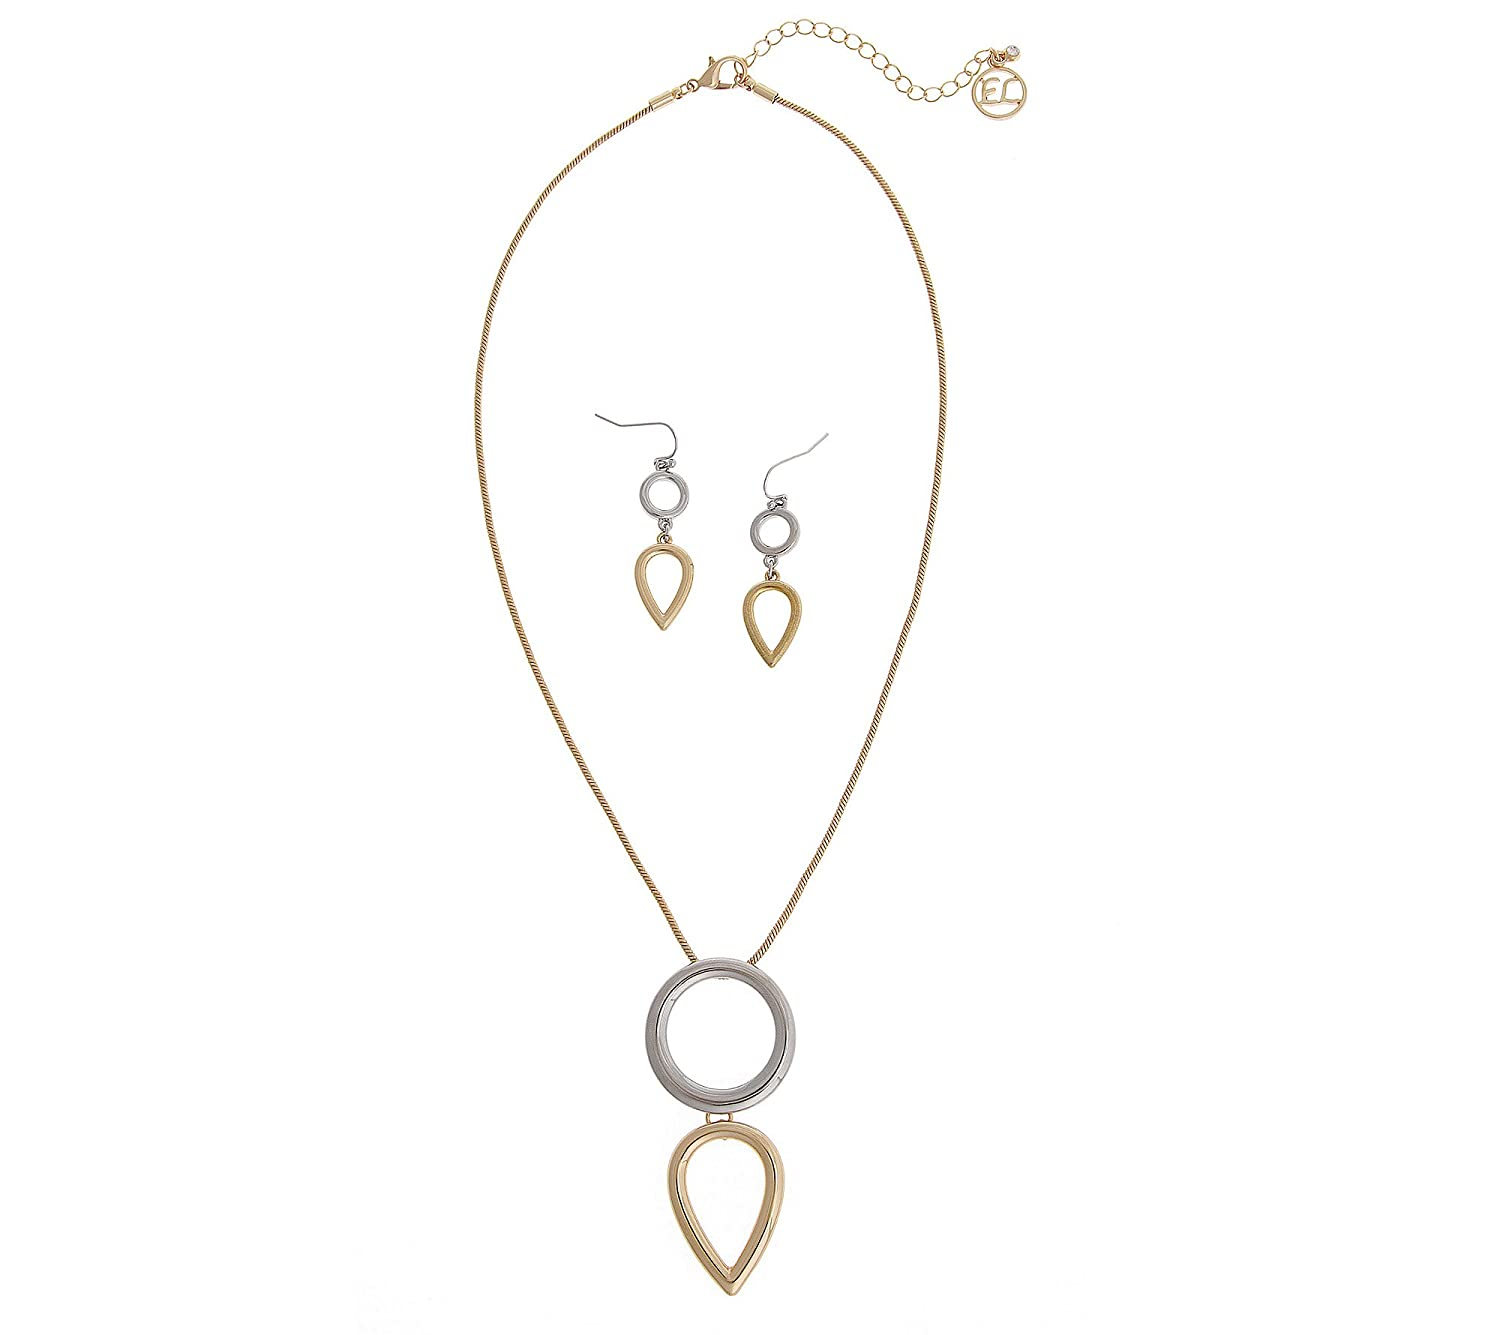 Erica Lyons Two-Tone Geometric Necklace and Earring Set